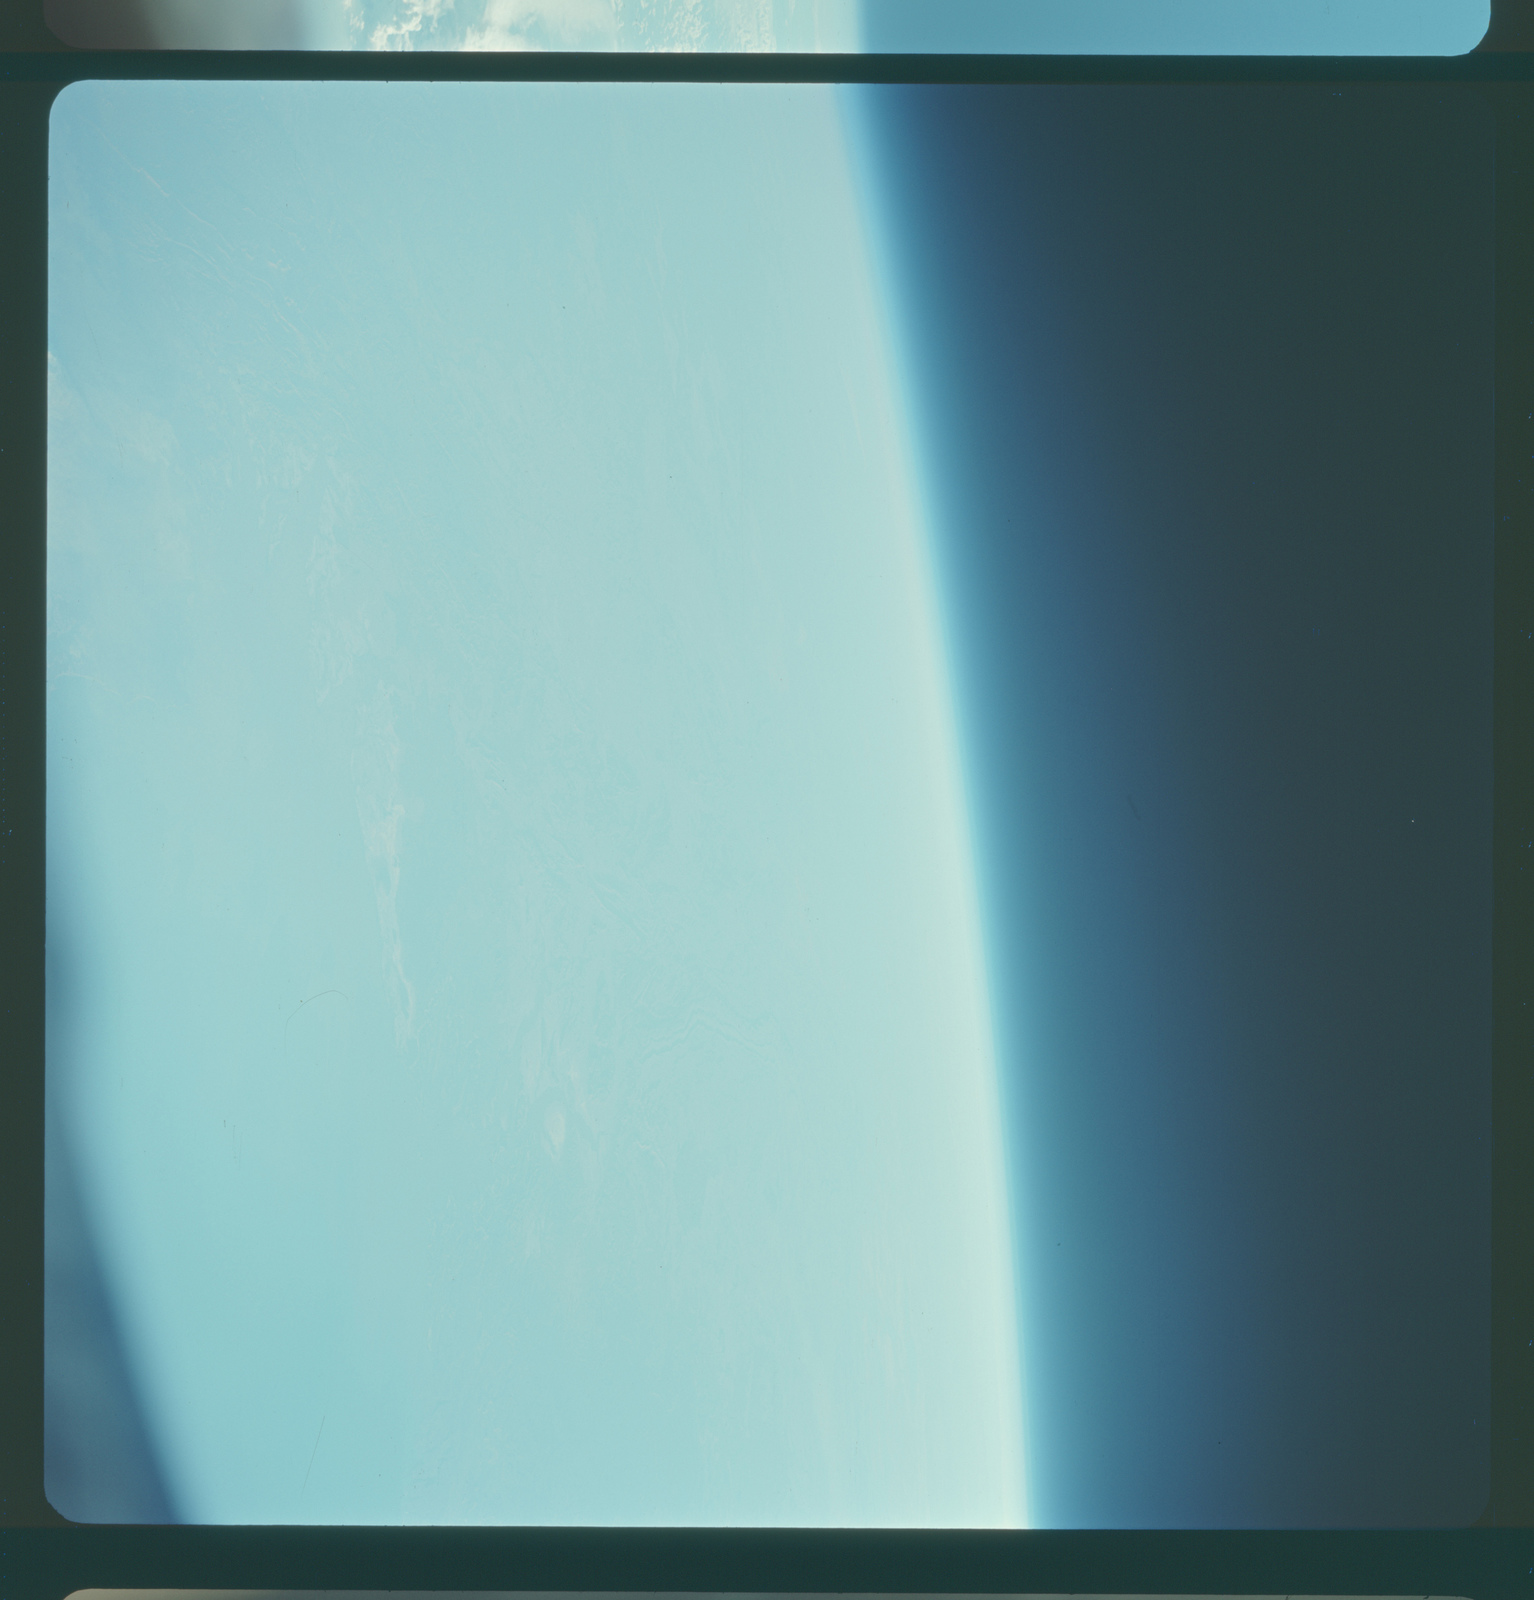 Gemini IV Mission Image - Overexposed